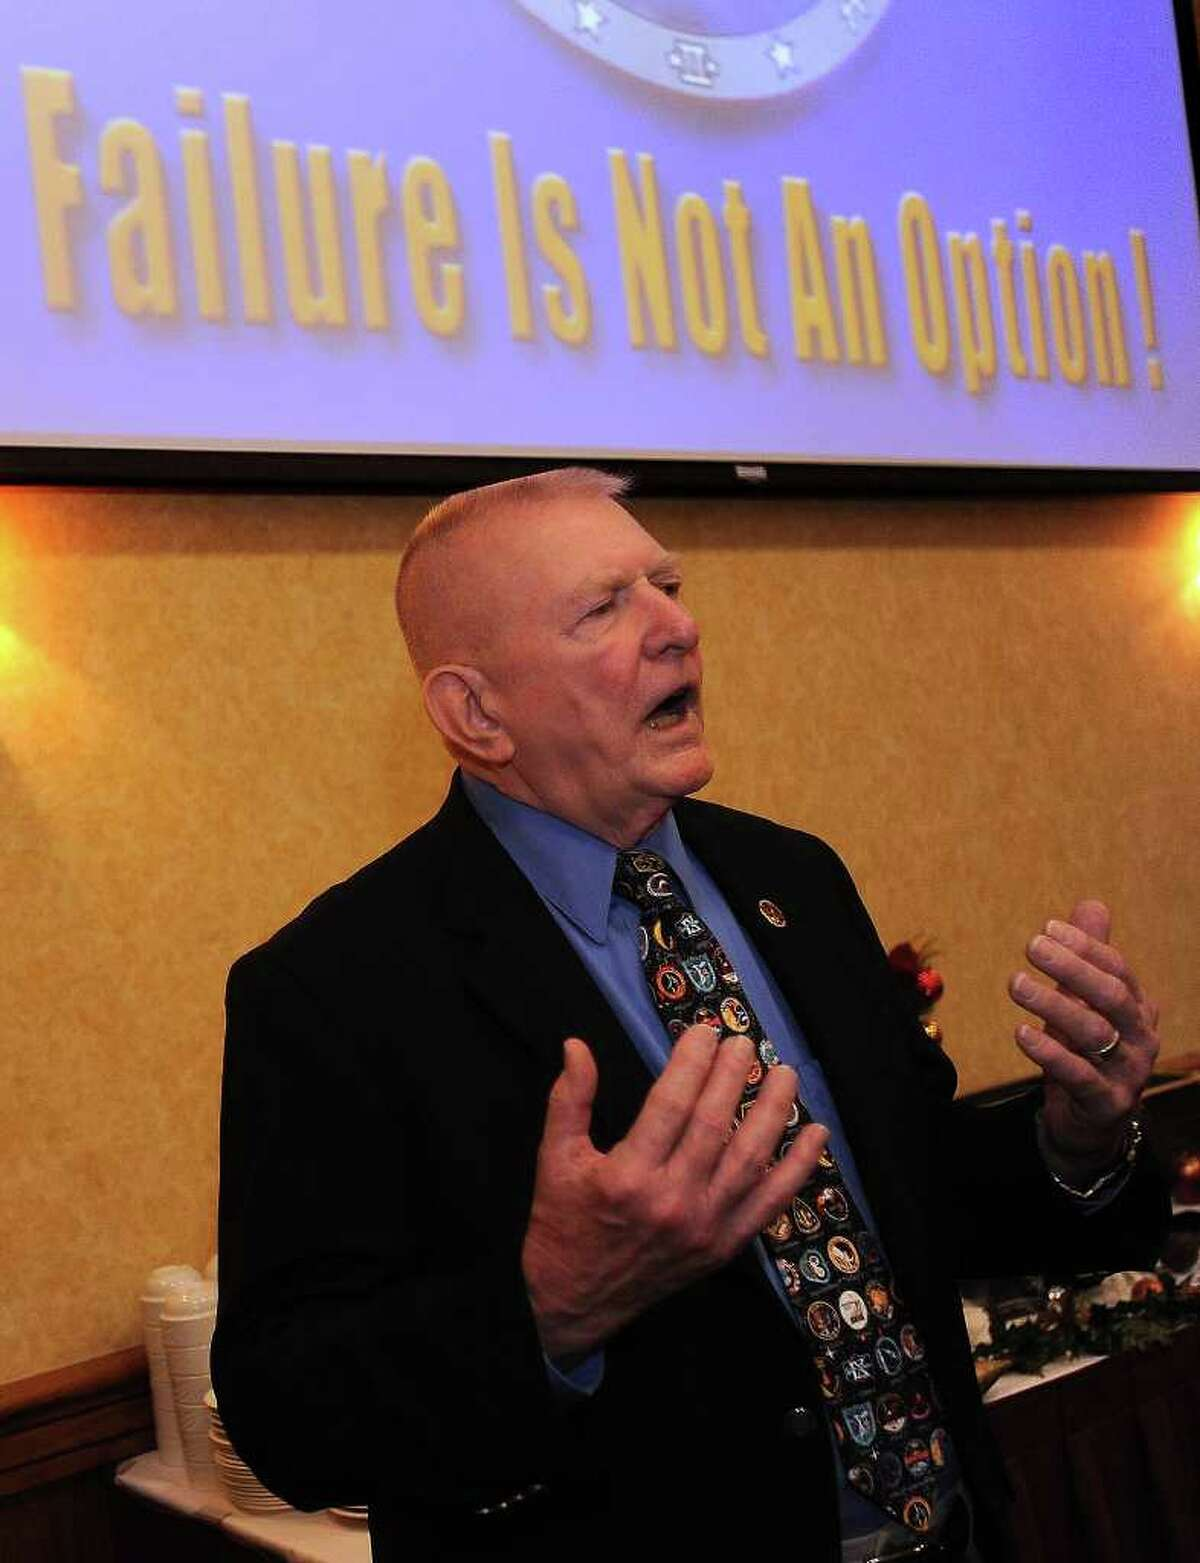 Gene Kranz former mission controller for NASA visited Beaumont Wednesday and spoke during a Beaumont Rotary Club meeting. Kranz is known for directing the Apollo 13 mission and was portrayed by Ed Harris in the Apollo 13 movie staring Tom Hanks. Guiseppe Barranco/The Enterprise